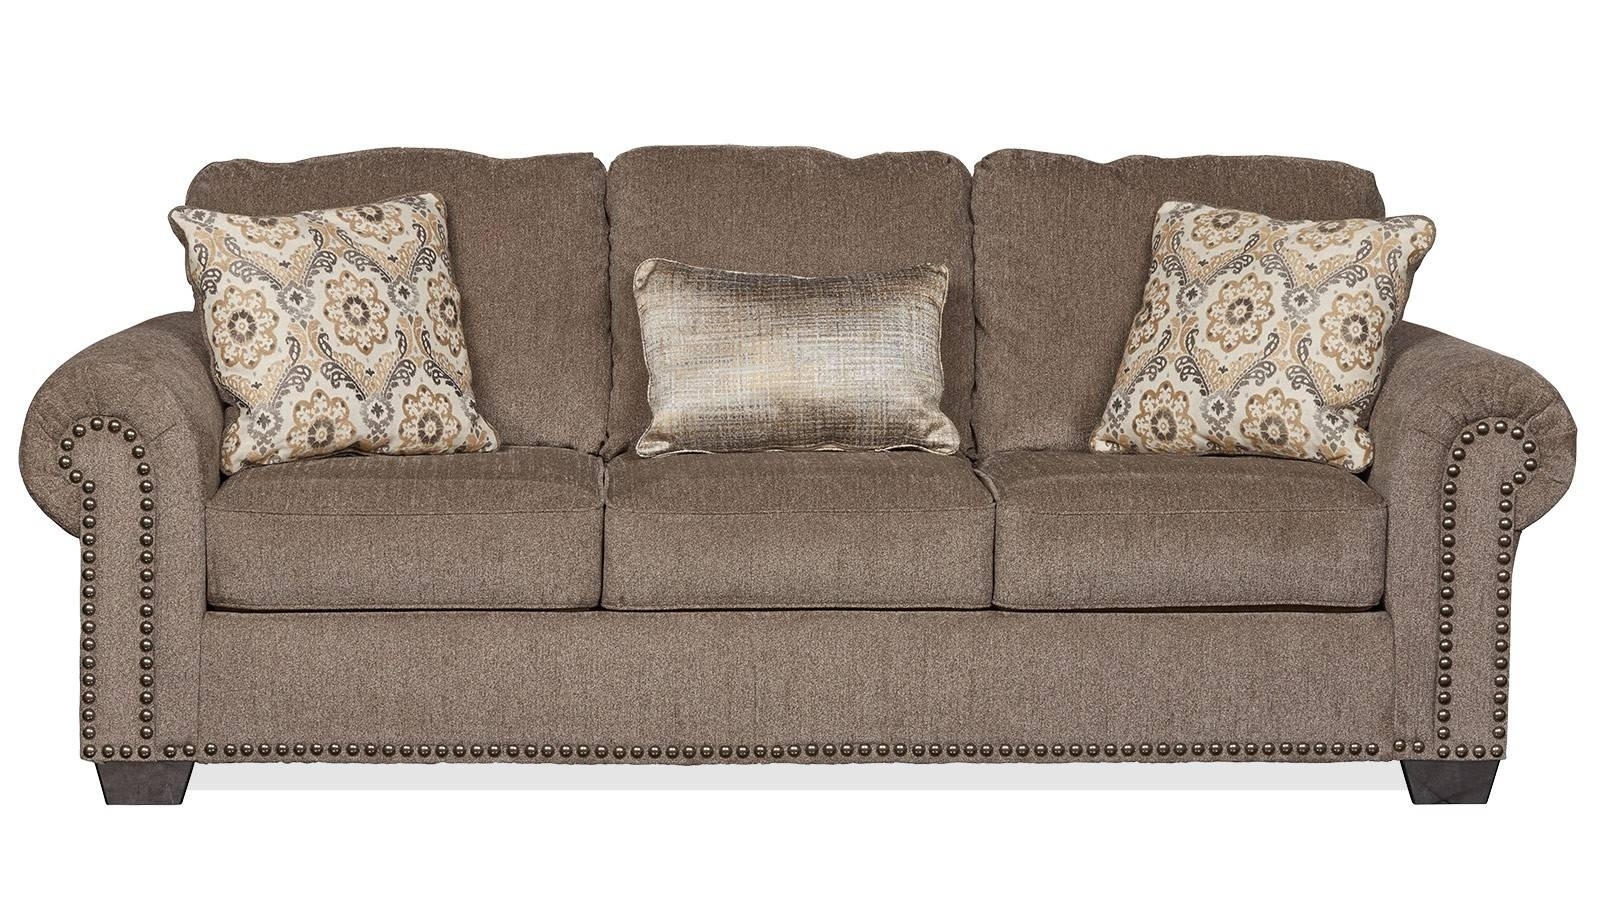 Wichita Falls Sleeper Sofa | Gallery Furniture with regard to Chenille Sleeper Sofas (Image 15 of 15)